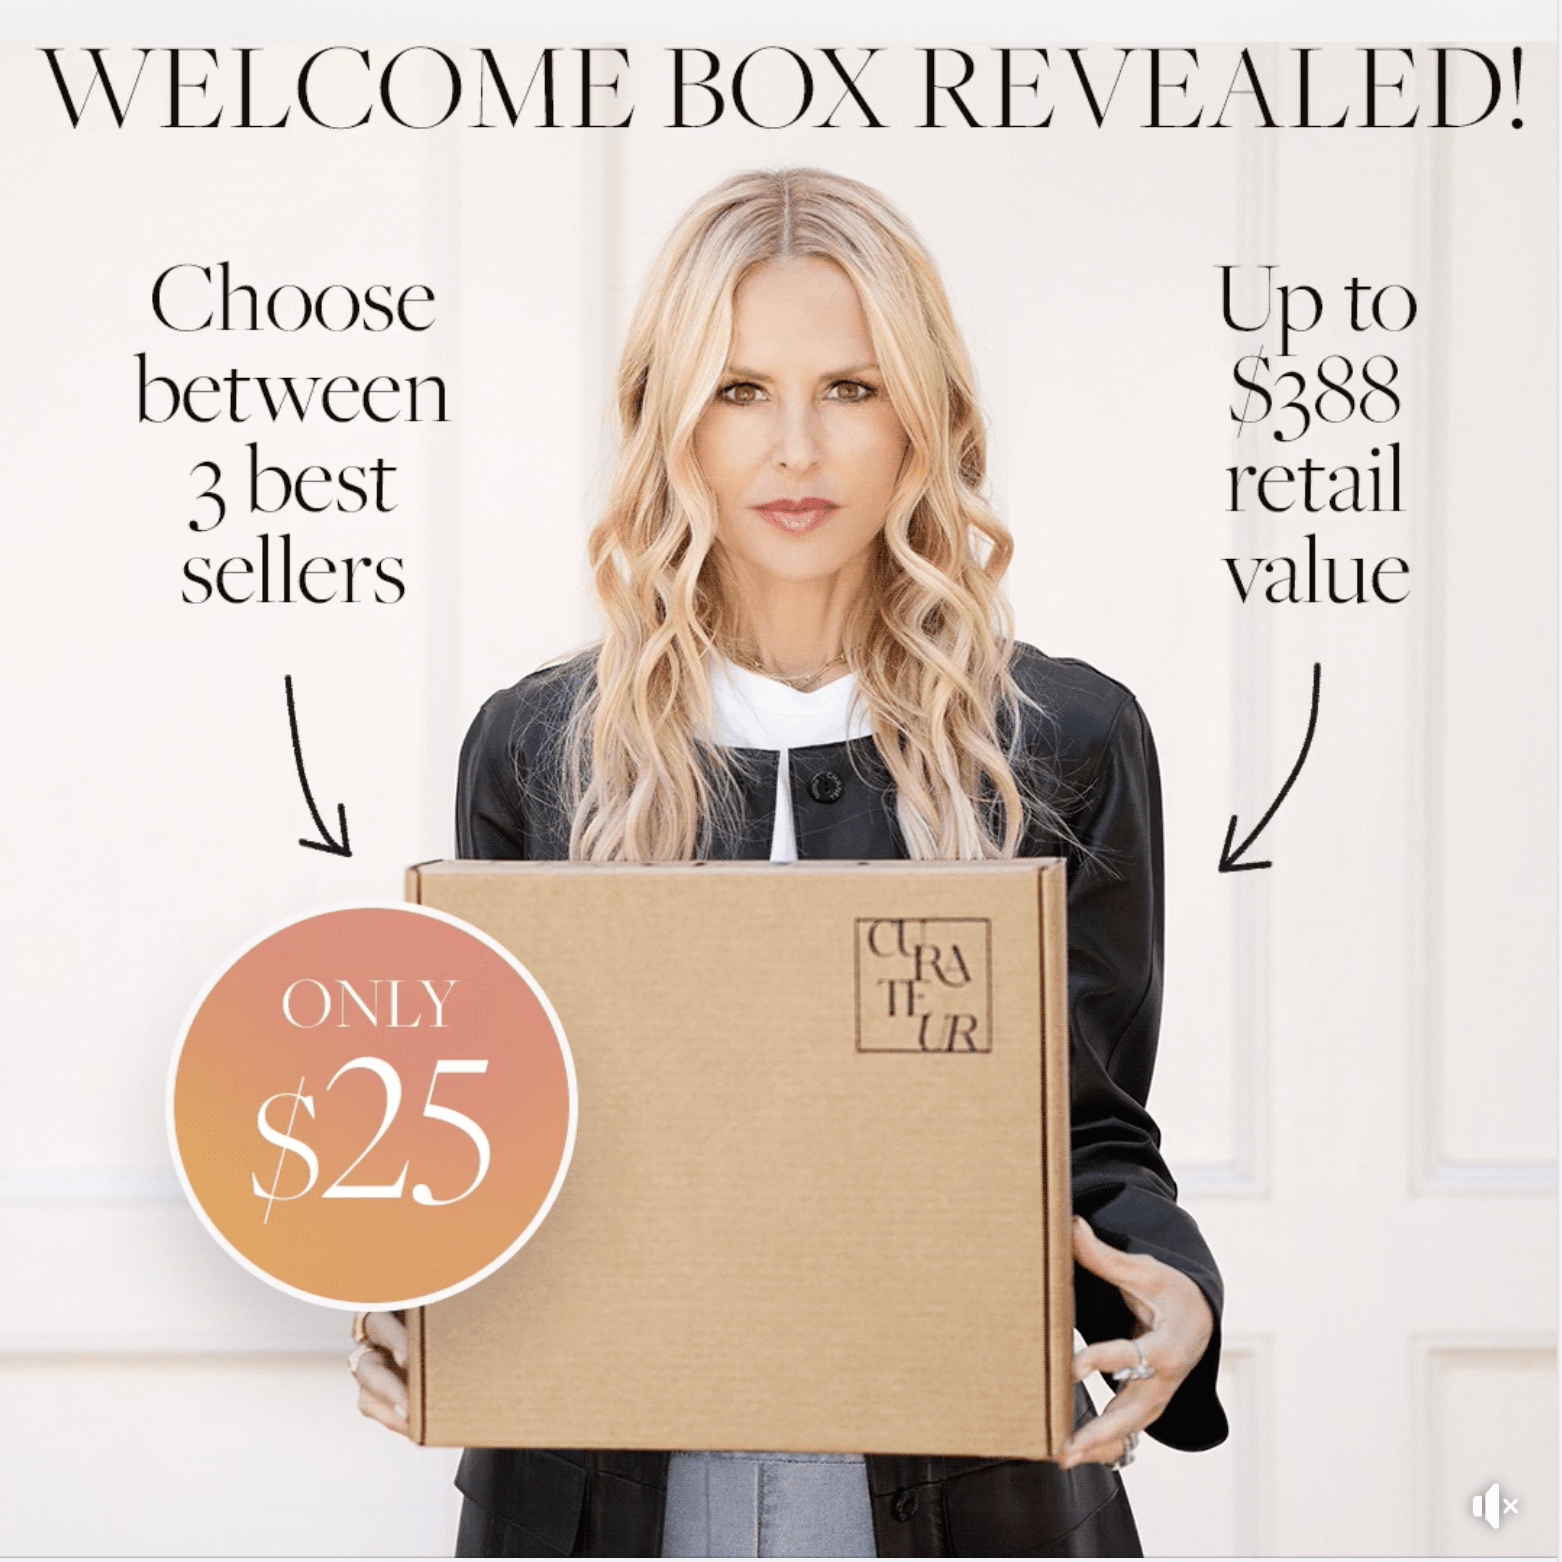 CURATEUR Summer 2021 Golden Hour Welcome Box – Just $25!